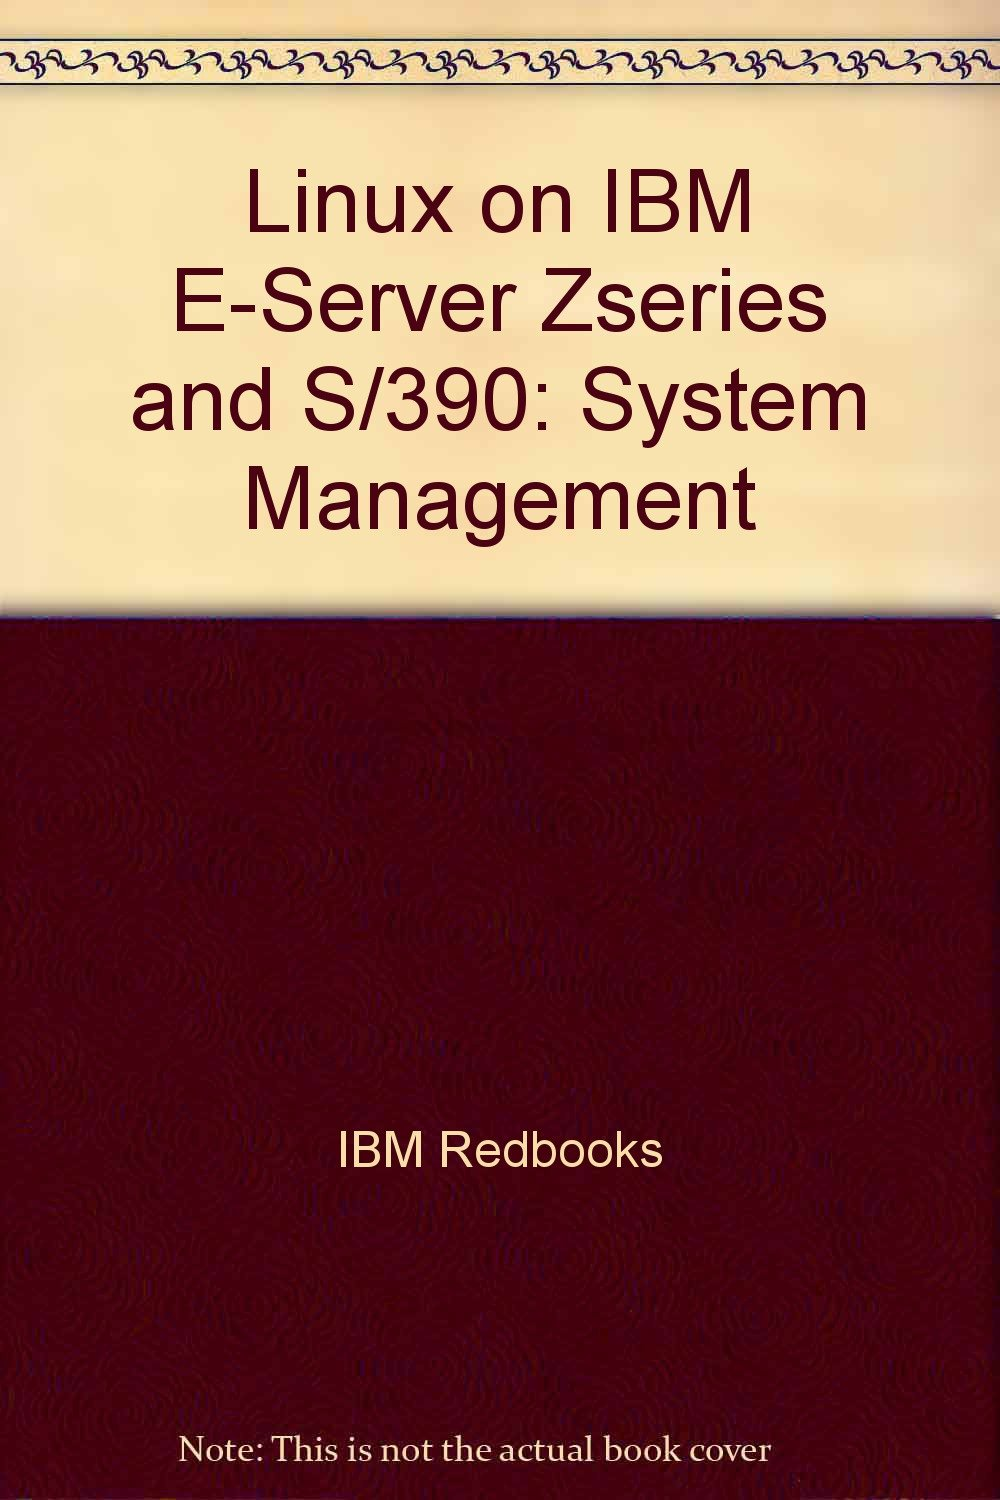 Linux on IBM E-Server Zseries and S/390: System Management ebook